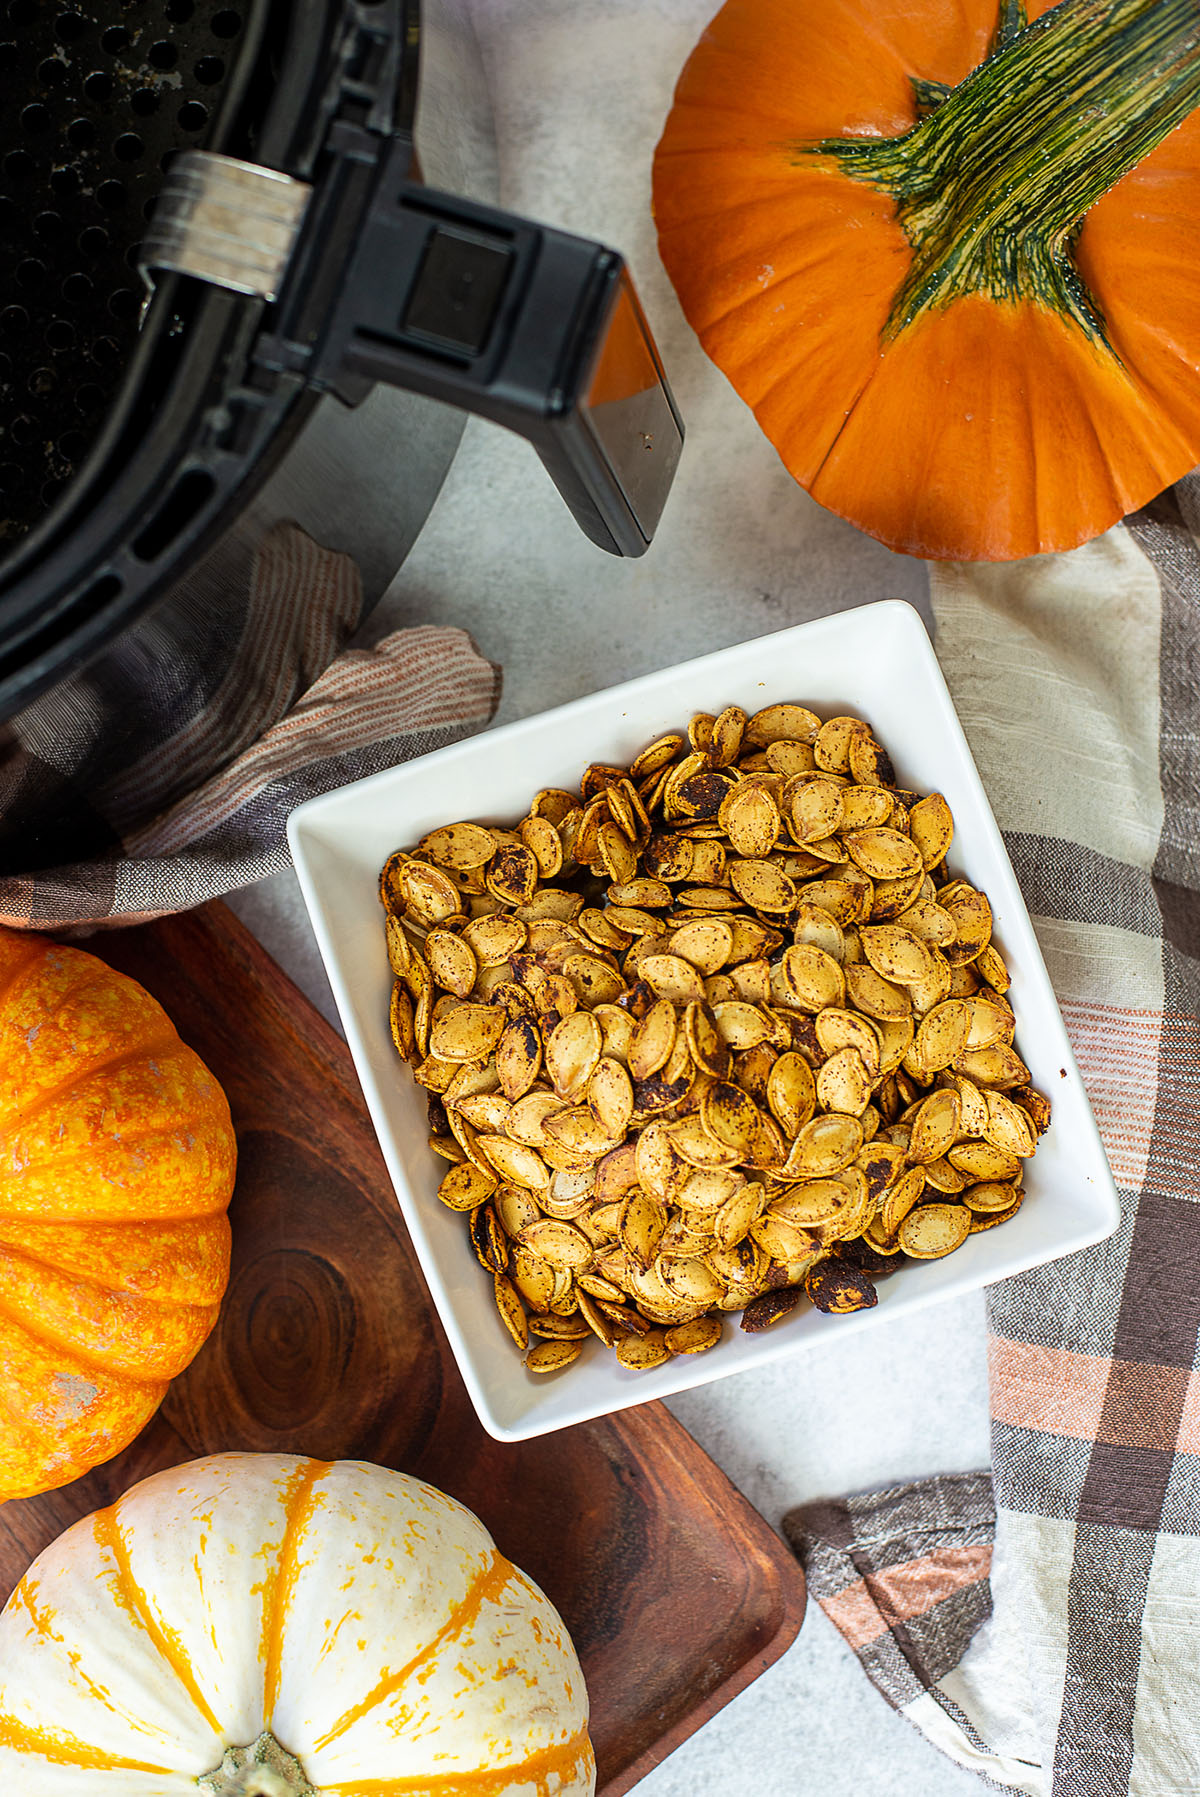 Overhead view of pumpkin seeds in a square white bowl.